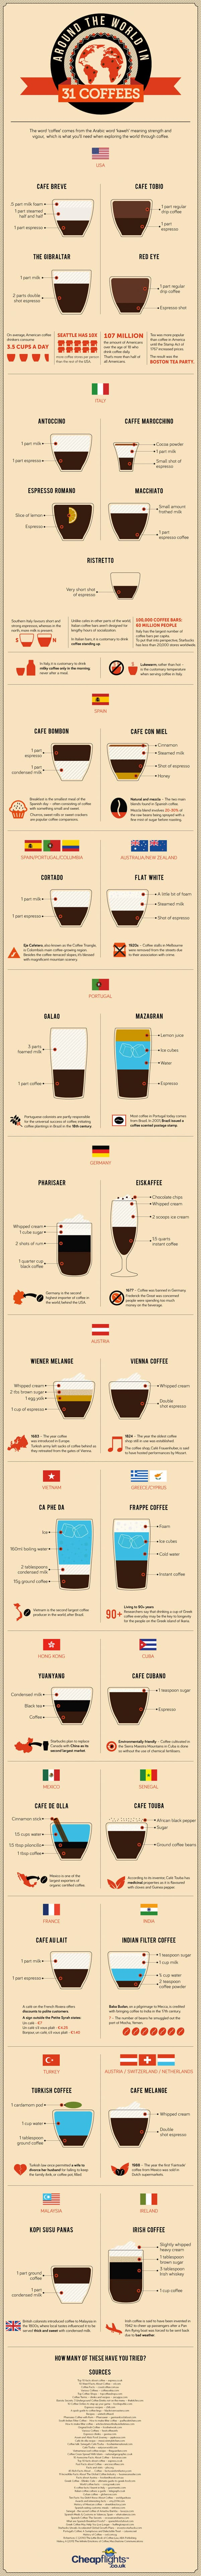 31 coffees around the world